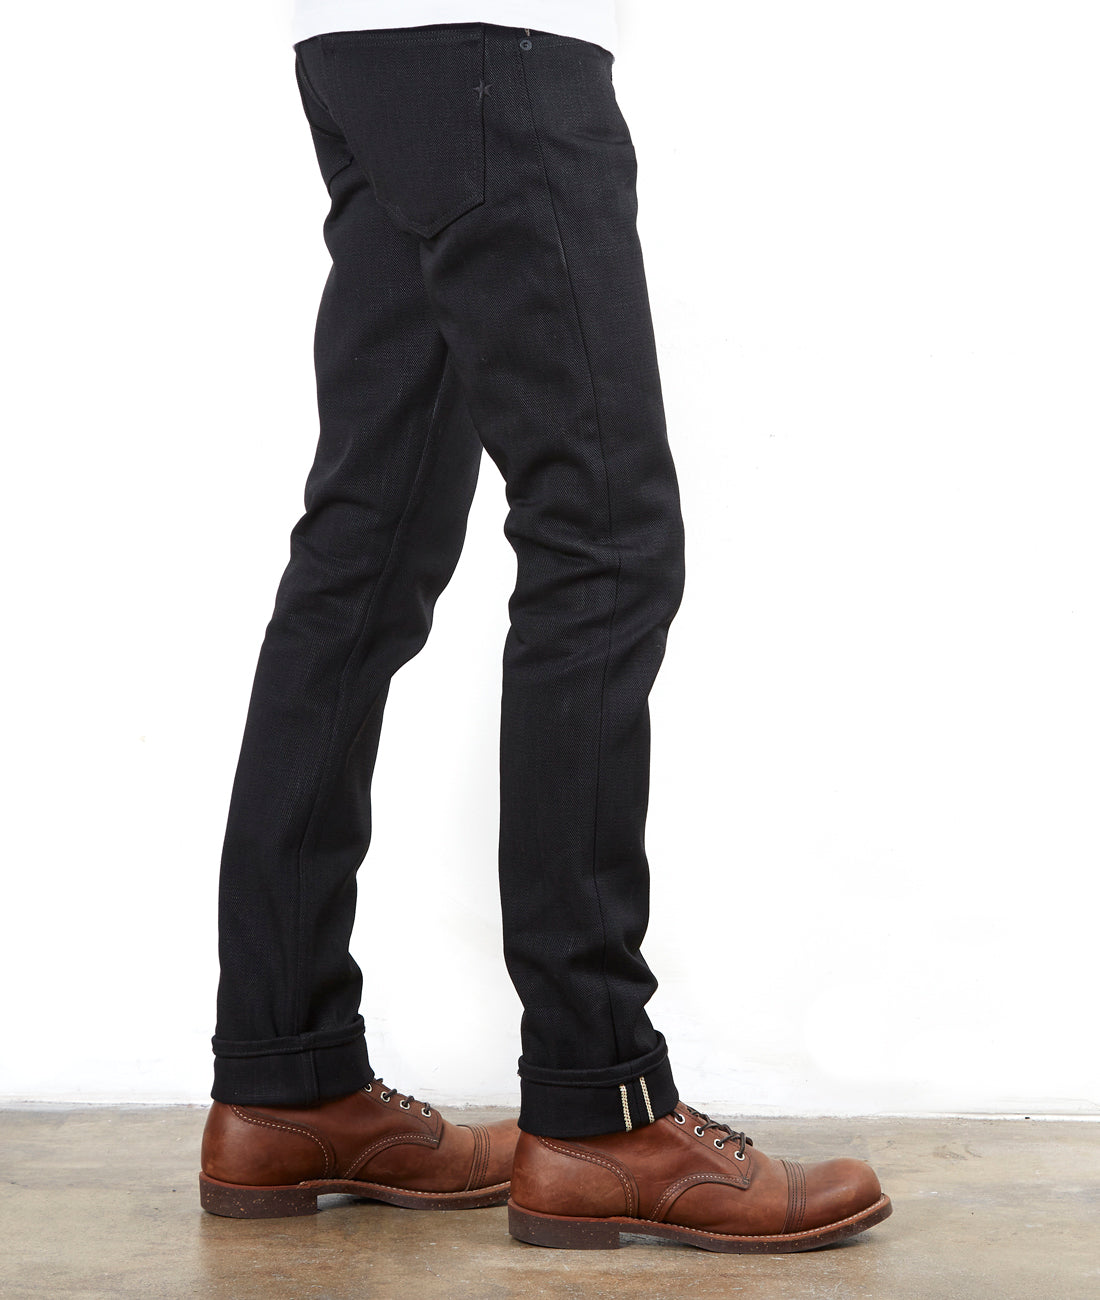 The Slim Straight 21.5oz Heavyweight Double Black Selvage Pre Order